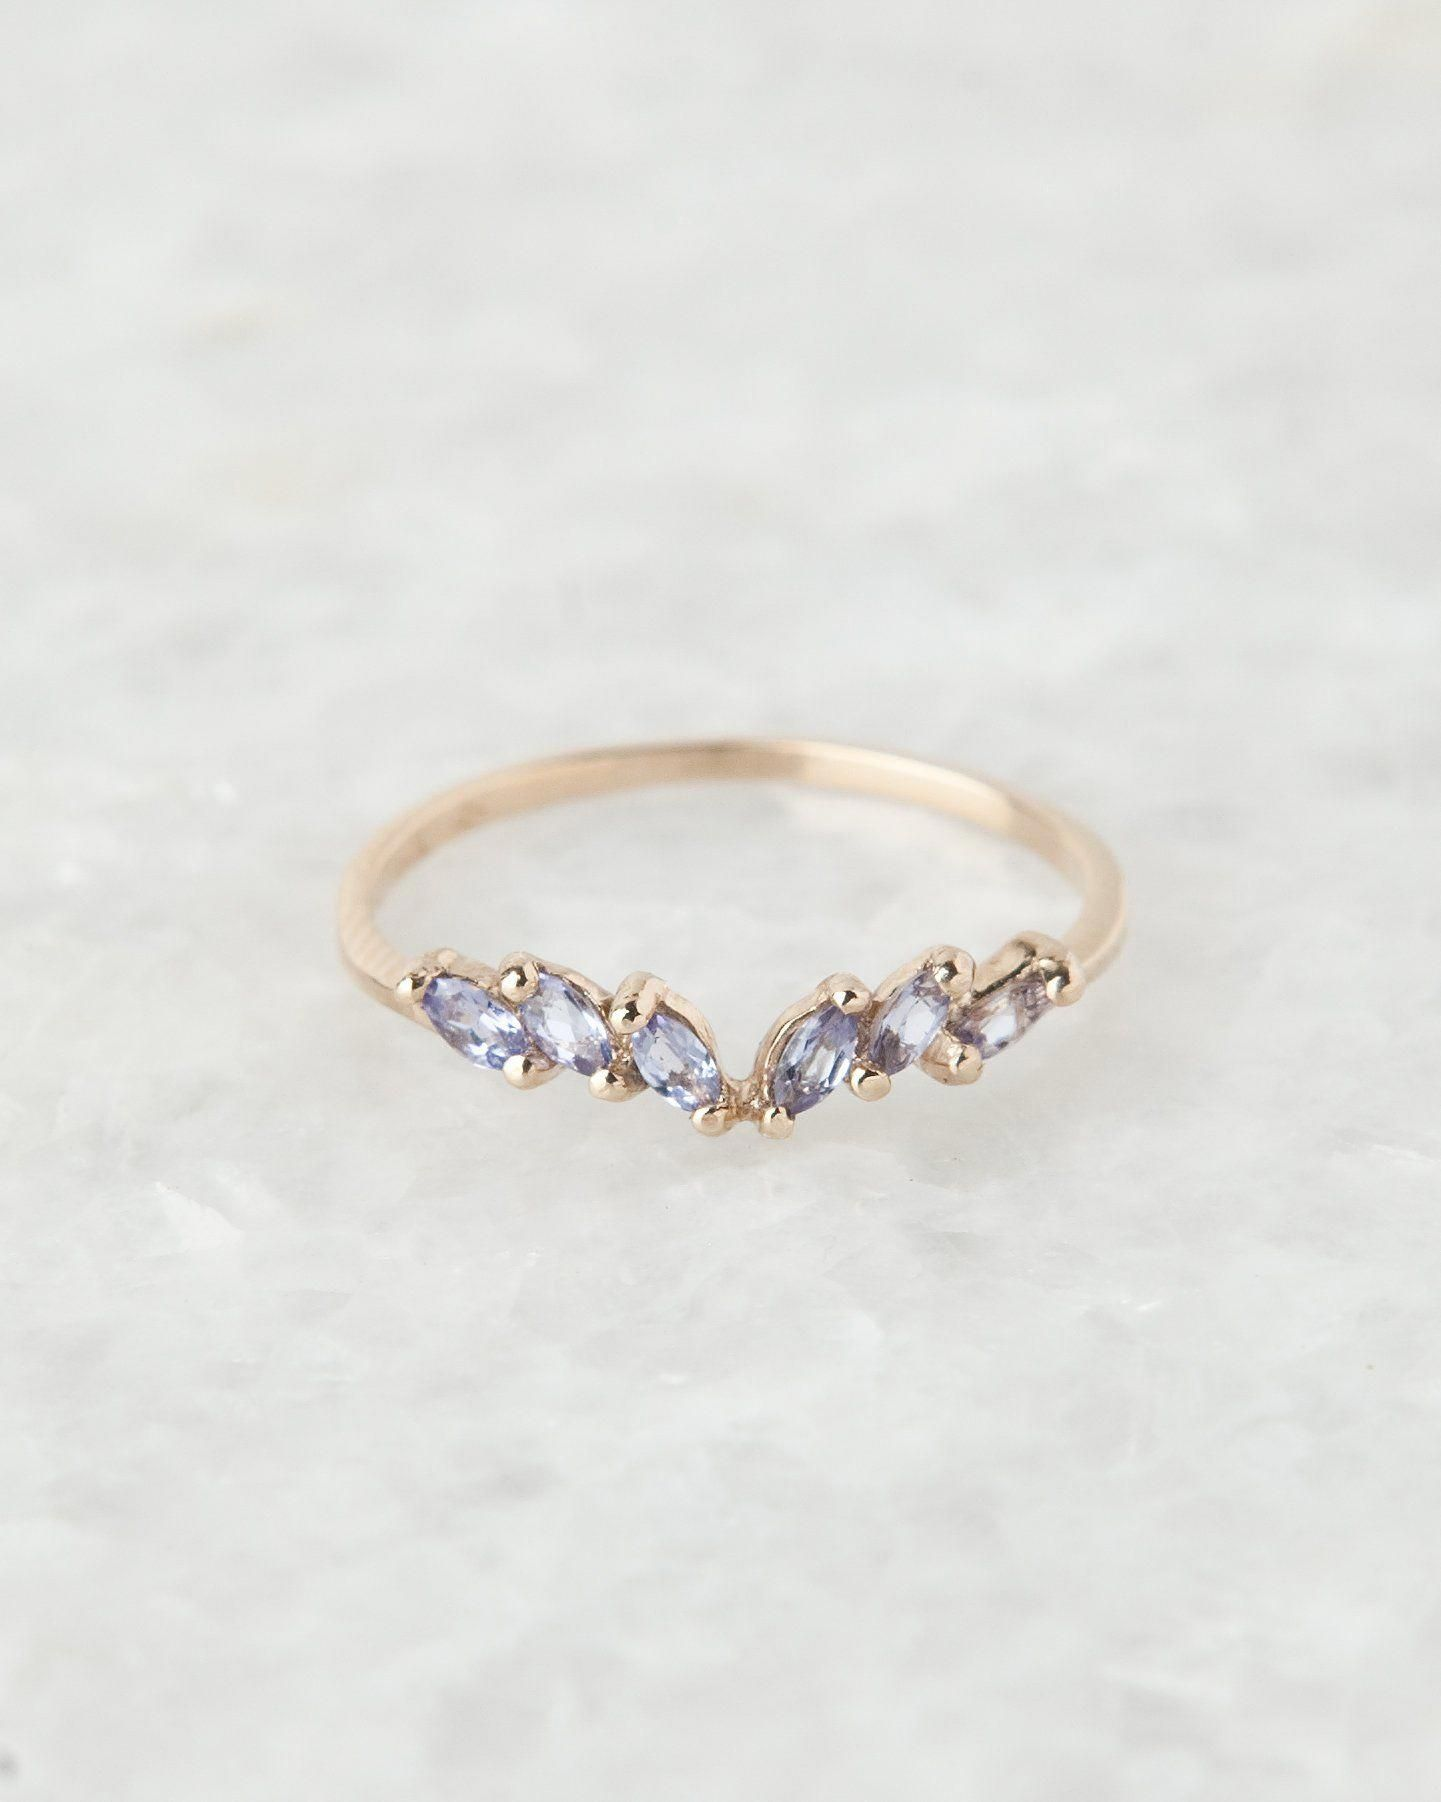 Customized Gold Crown Band Matching Band Anniversary Gift for Her Band for Women Supporting Gold Band Marquise Shape Crown Wedding Band